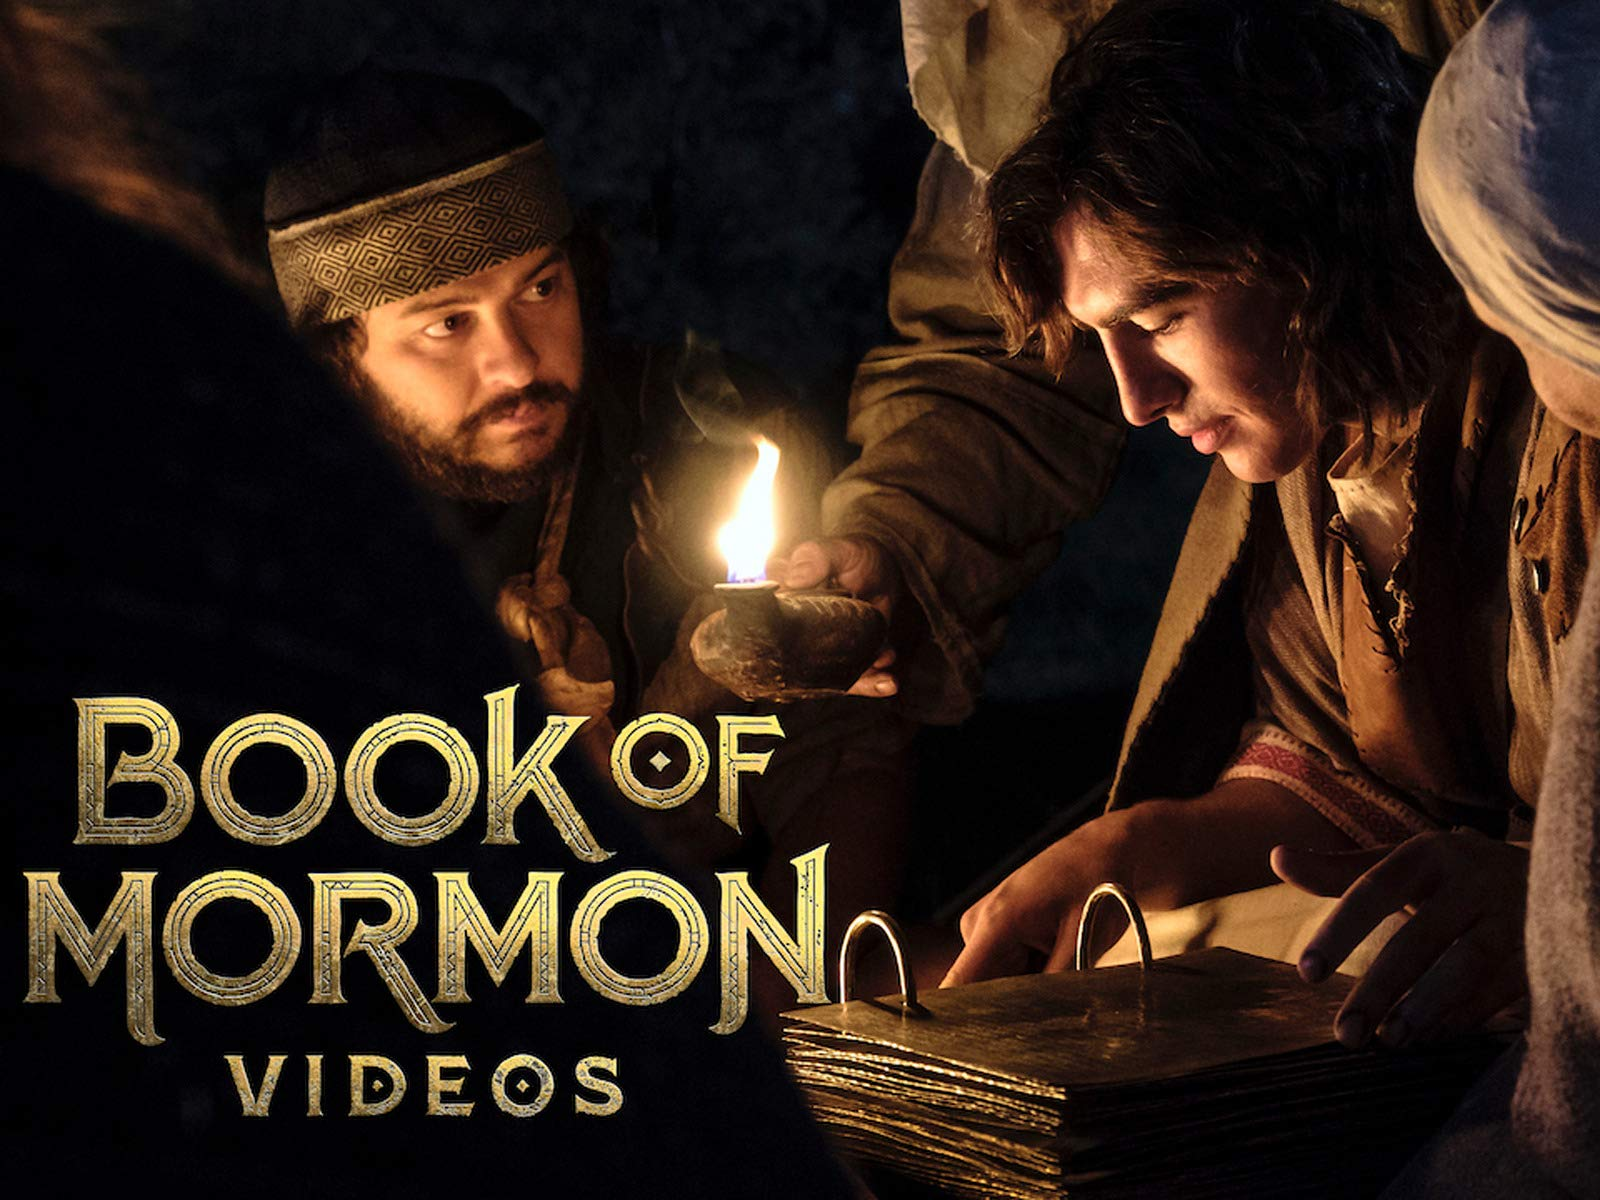 Book of Mormon Videos - Season 1